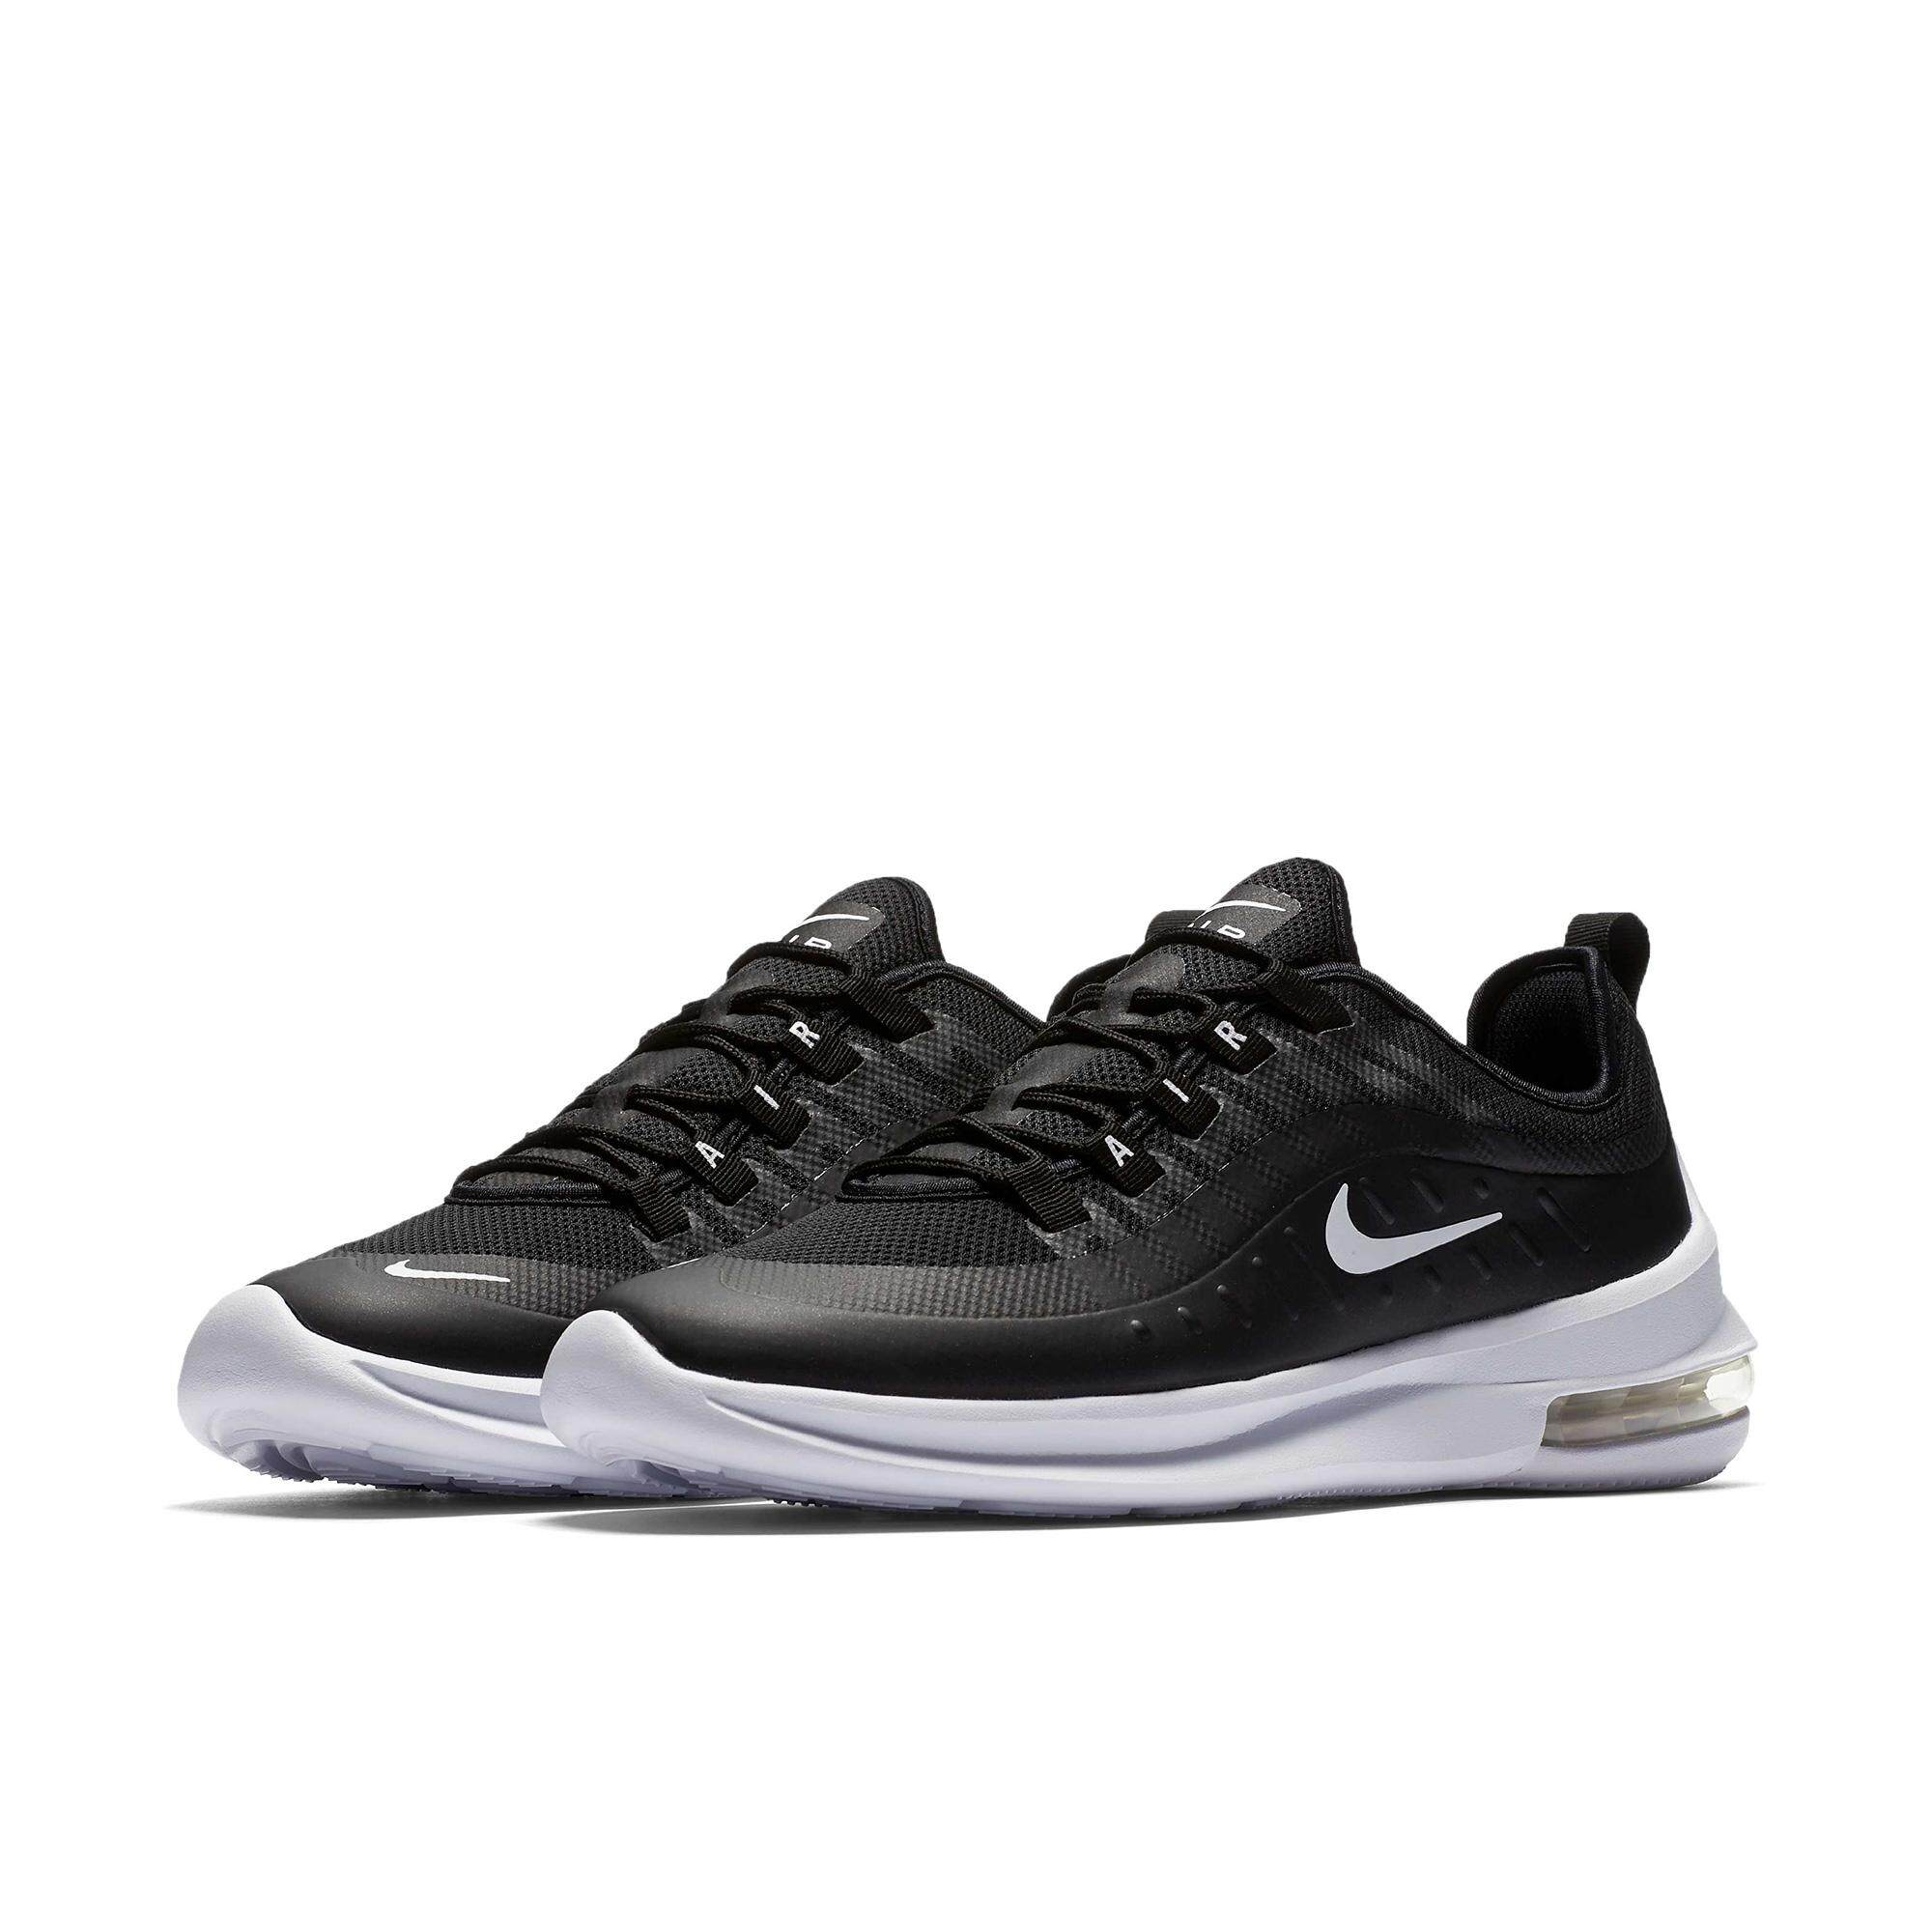 buy popular 92309 e2323 Nike men s shoes 2019 summer AIR MAX air cushion shoes breathable running  shoes sports shoes AA2146